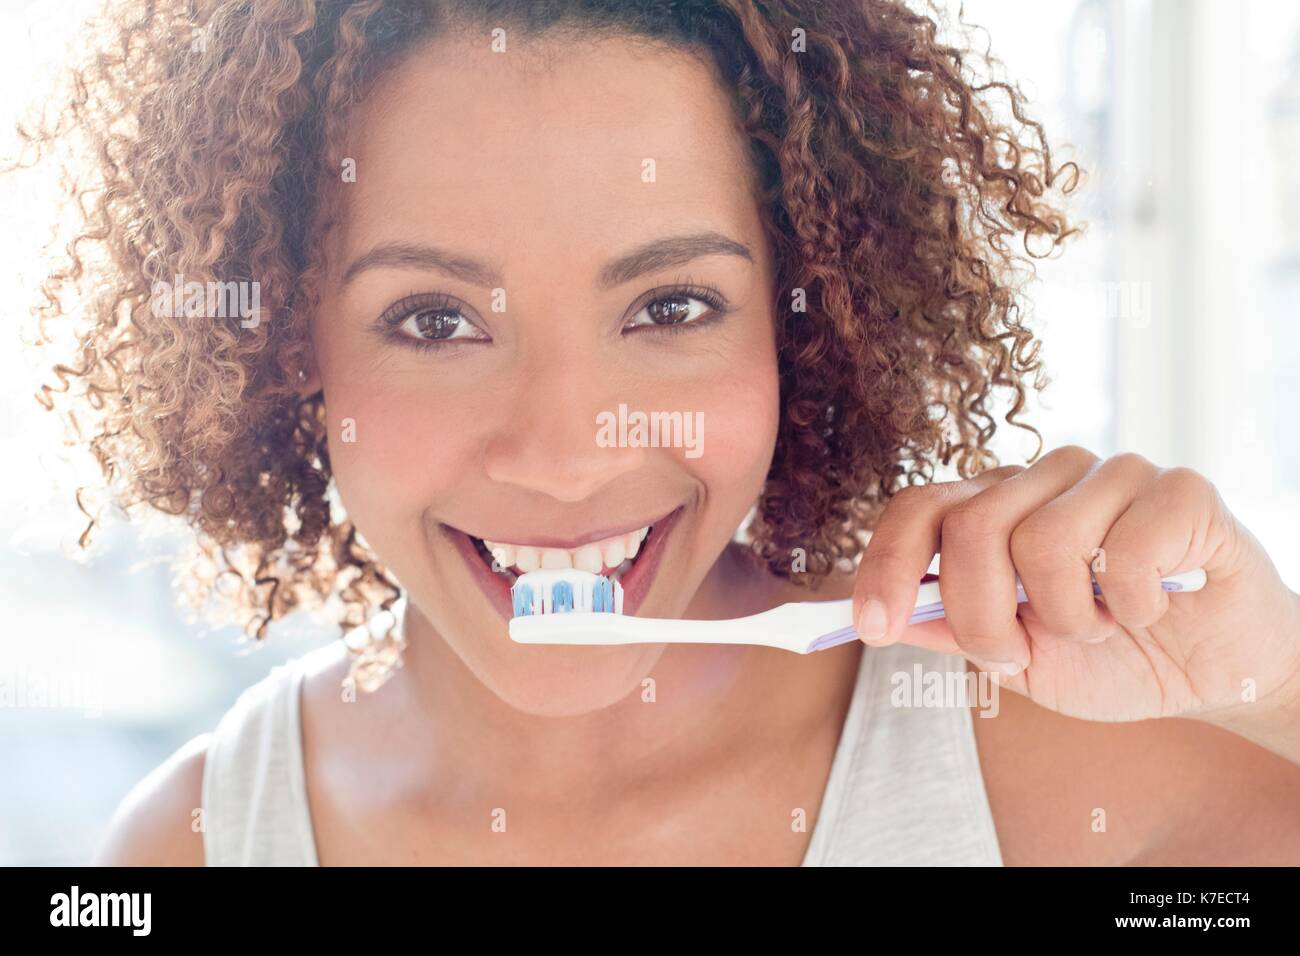 Portrait of mid adult woman brushing teeth. - Stock Image